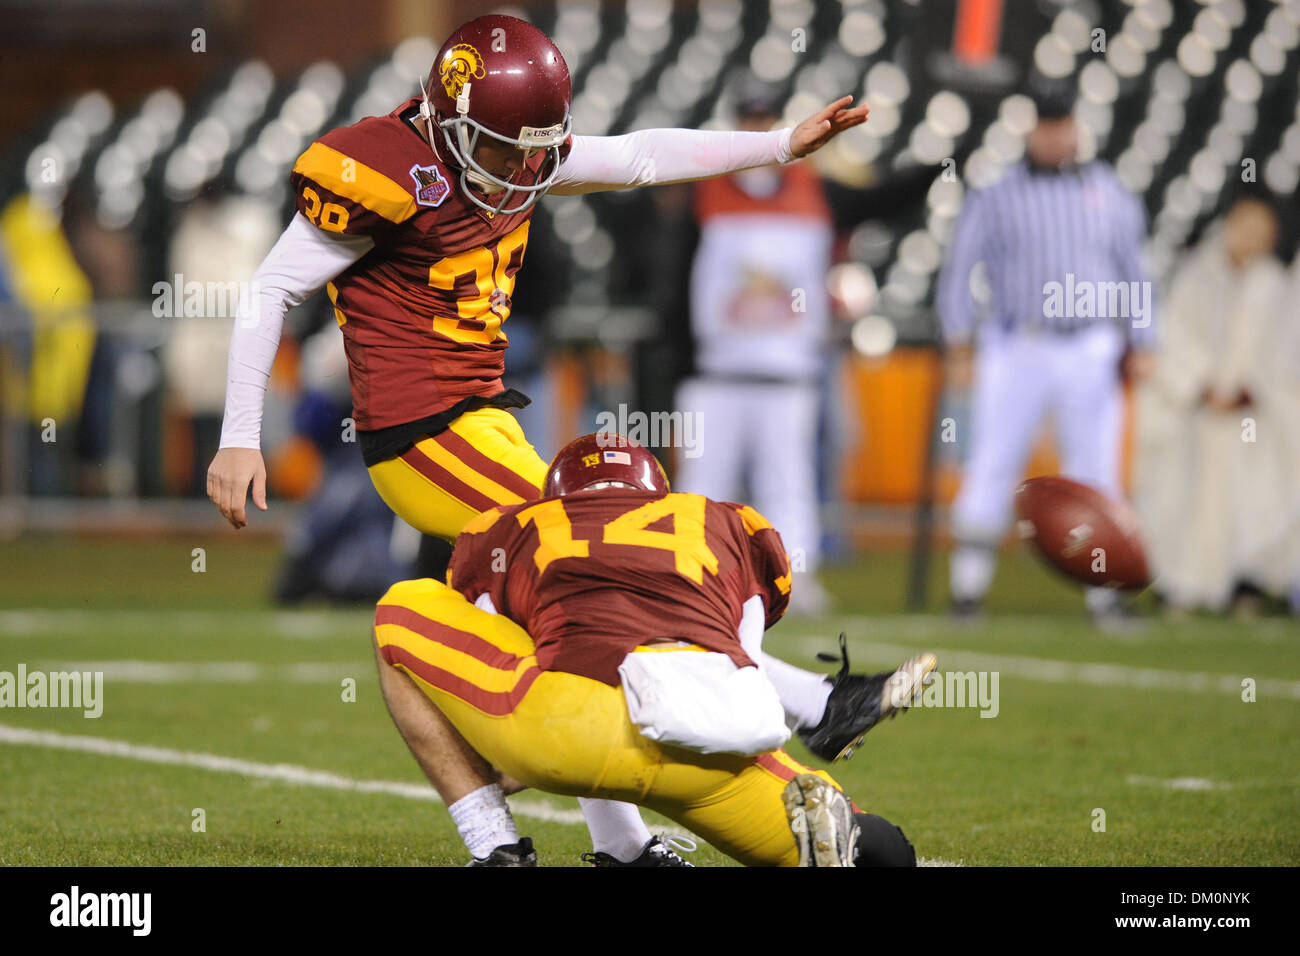 Dec. 26, 2009 - San Francisco, California, U.S - 26 December 2009: USC SR PK Jordan Congdon (38) kicks USC's opening extra point during the Emerald Bowl contest between USC and Boston College at AT&T Park in San Francisco, CA.  USC won 24-13. (Credit Image: © Matt Cohen/Southcreek Global/ZUMApress.com) - Stock Image